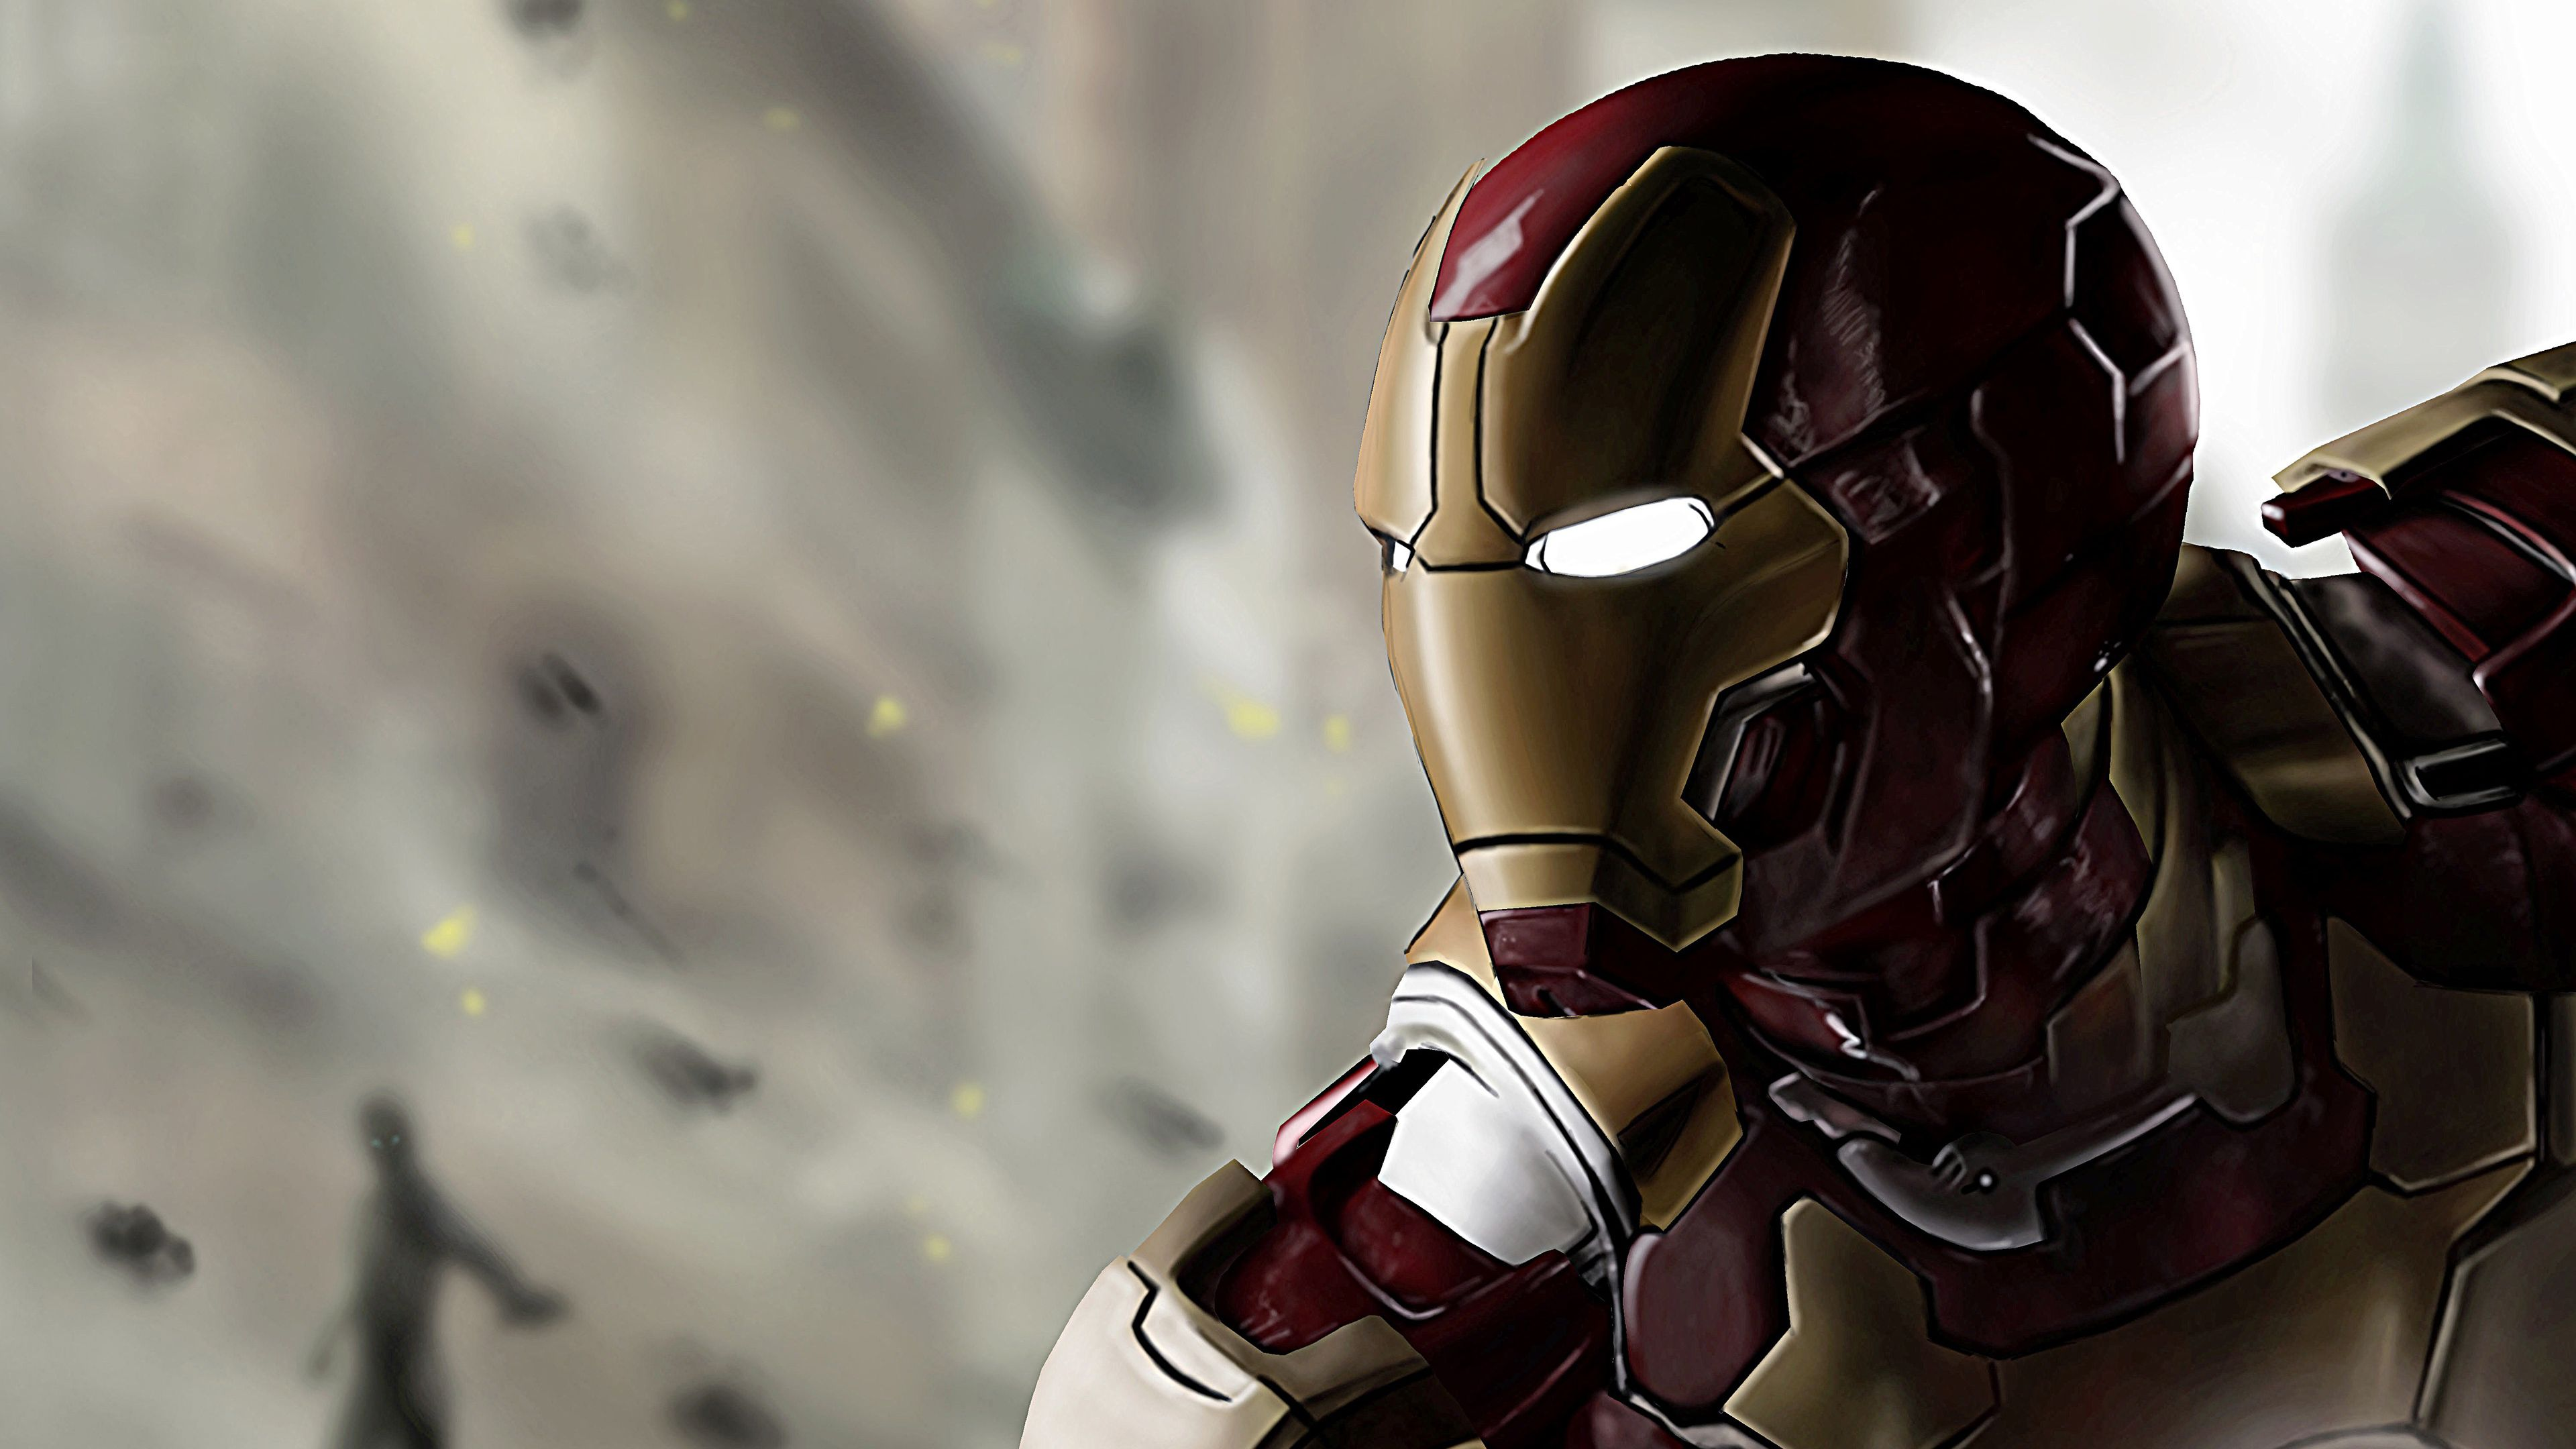 Iron Man In Avengers Age Of Ultron 4k Superheroes Wallpapers Iron Man Wallpapers Hd Wallpapers Digital Art Wallpape Iron Man Wallpaper Iron Man Avengers Age Iron man age of ultron wallpaper